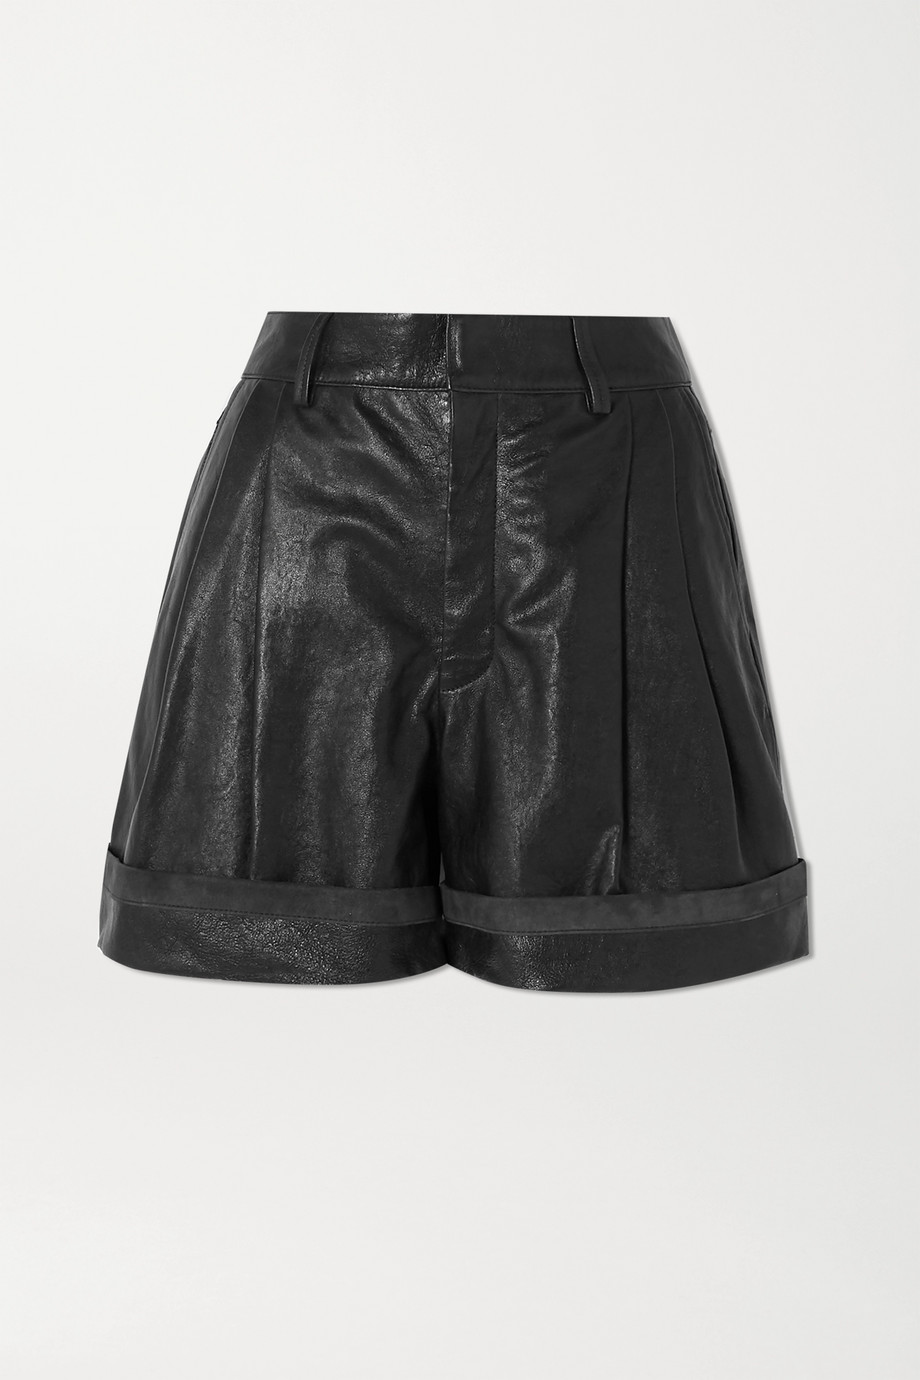 Chloé Pleated leather shorts